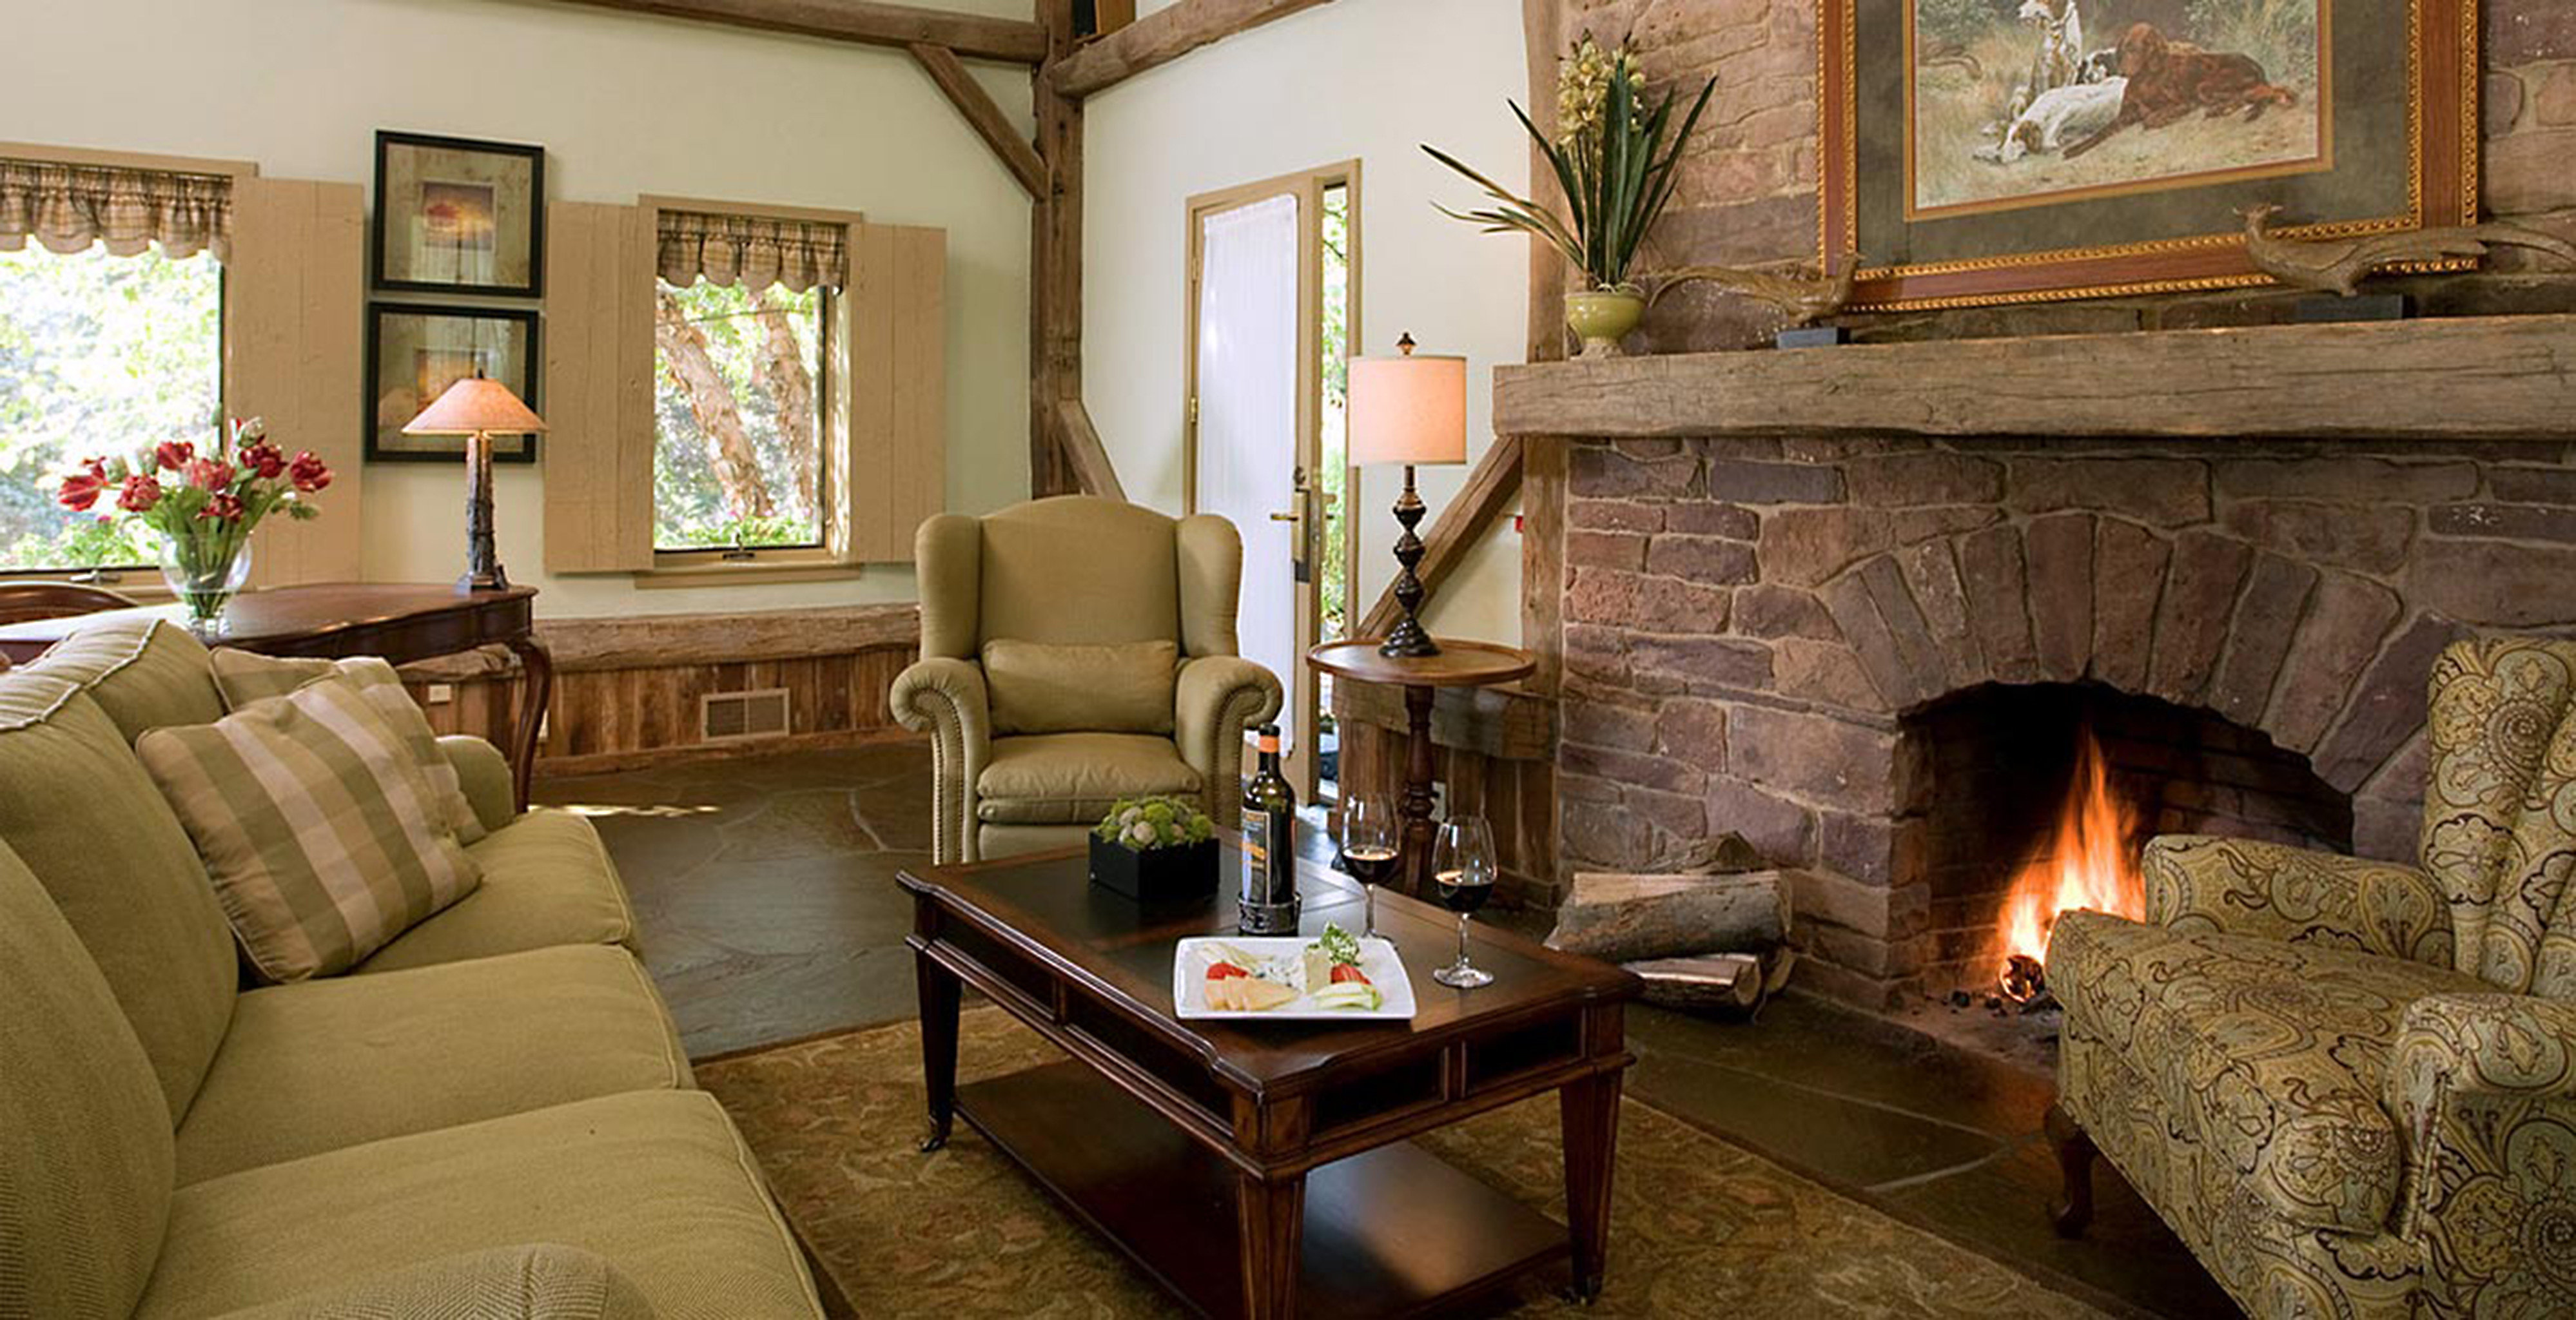 Fireplace Inn Lounge Rustic sofa fire property living room home cottage farmhouse Villa mansion stone